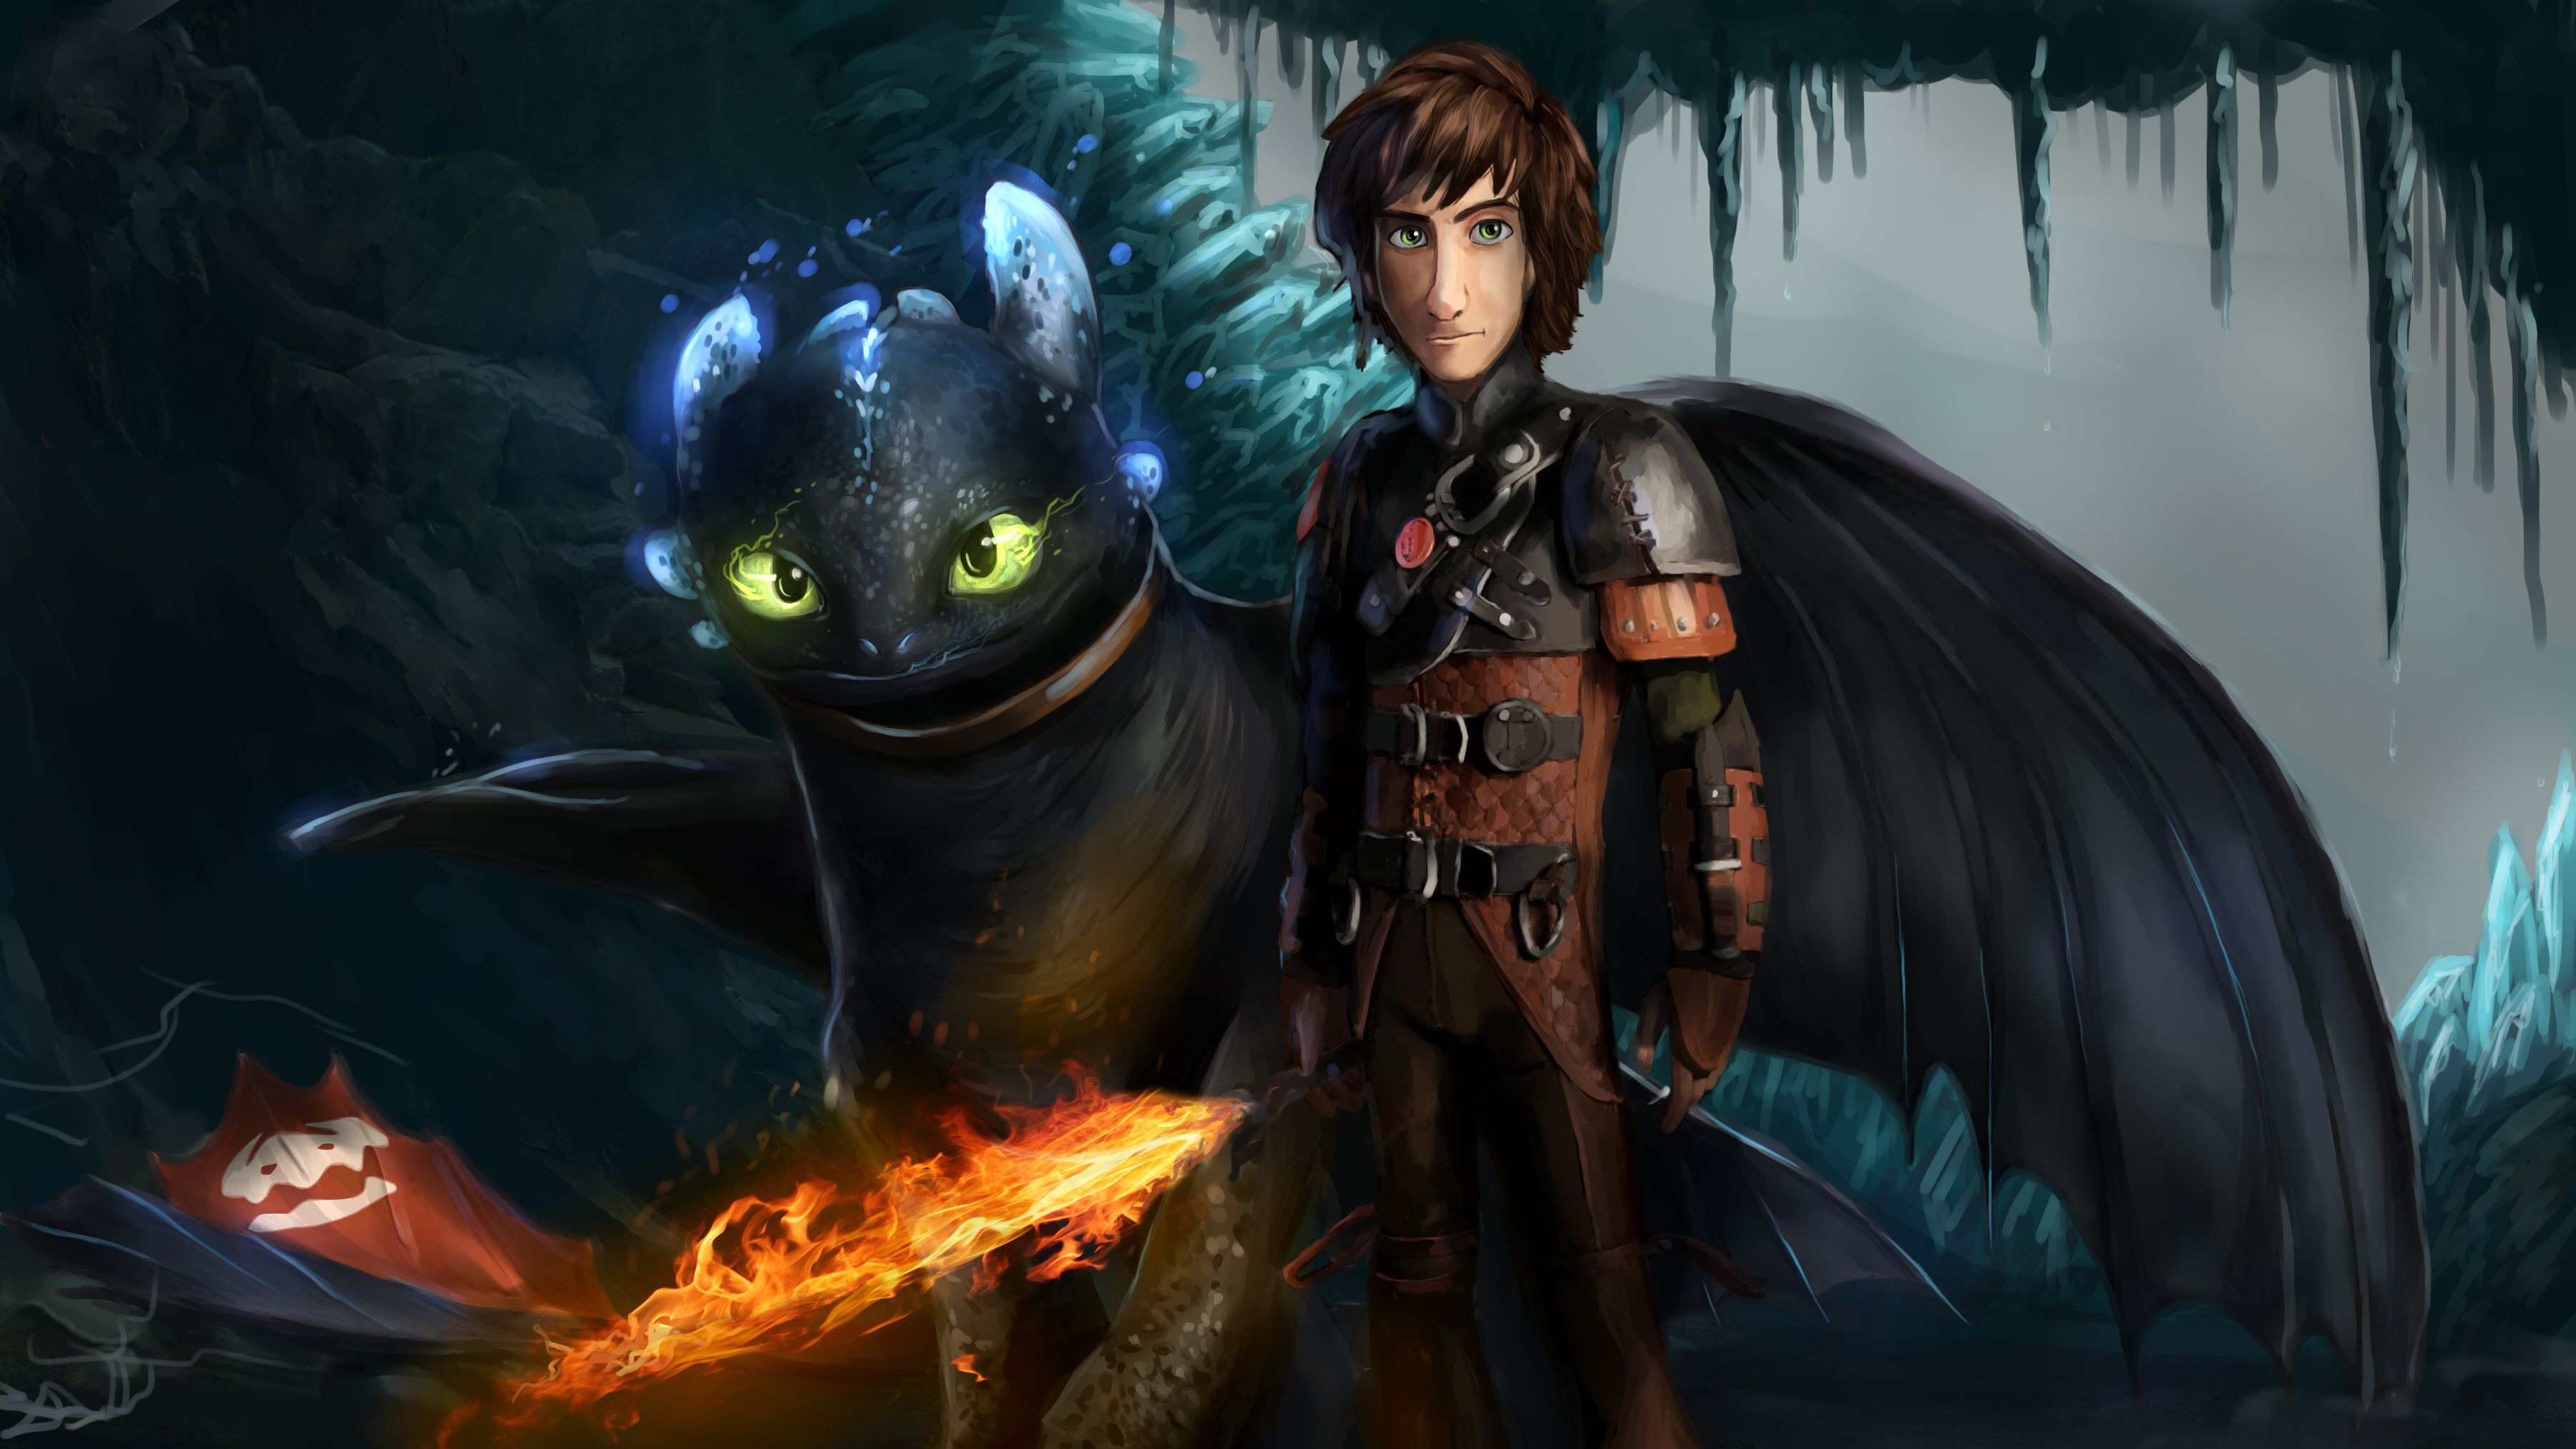 240x320 How To Train Your Dragon The Hidden World Art Nokia